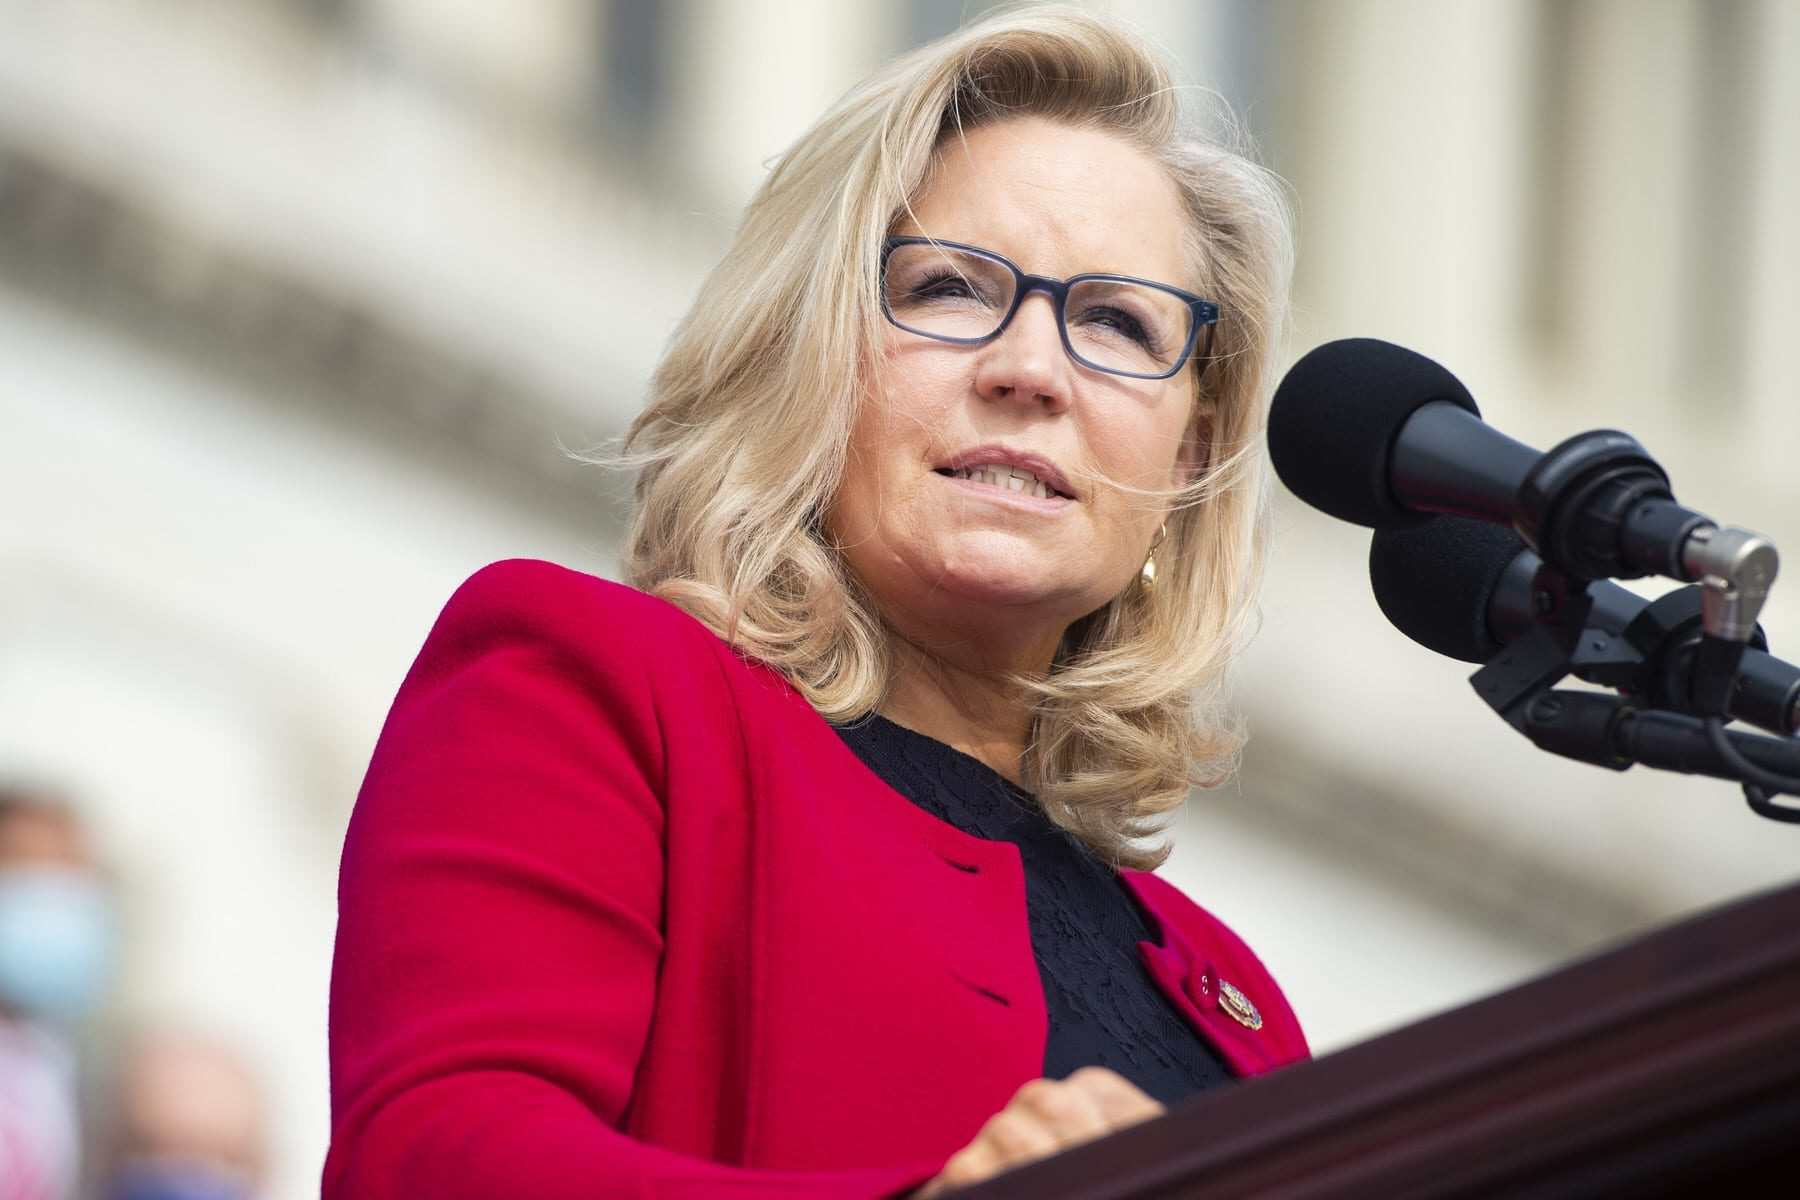 Republican Conference Chair Liz Cheney, R-Wyo., speaks during an event at the Capitol.